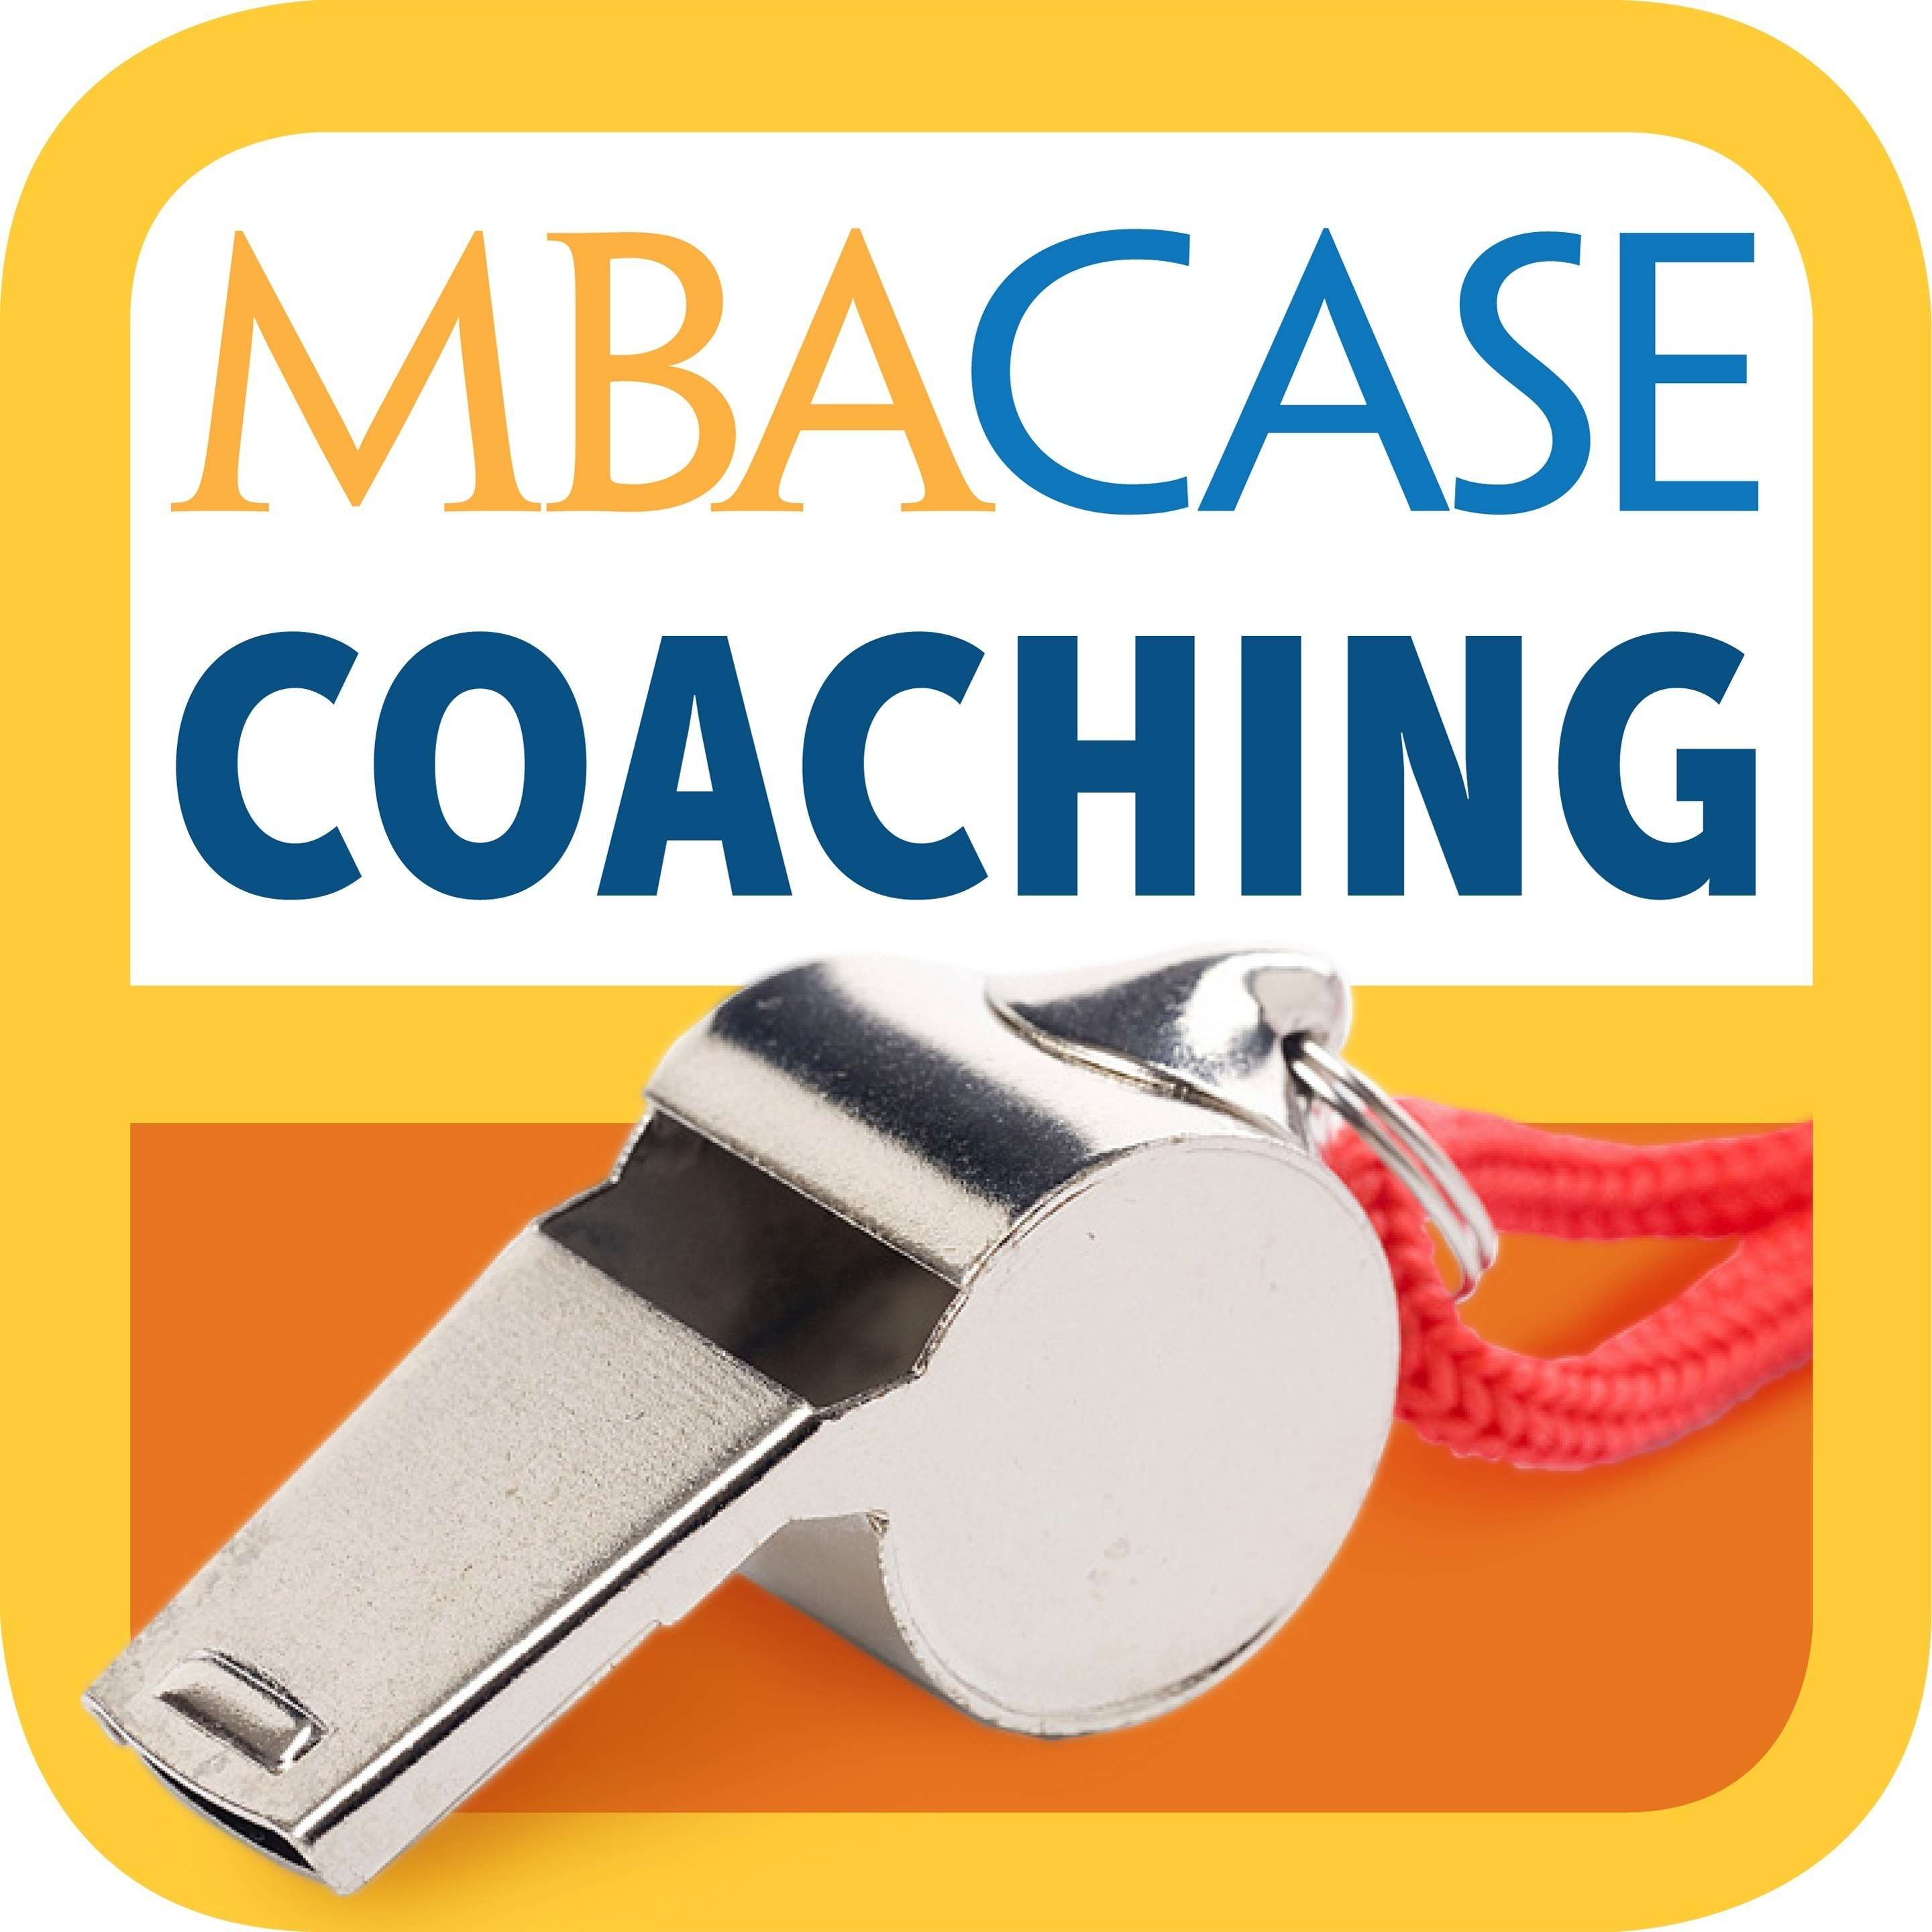 pricing and faqs mbacase each 1 hour session includes skype call practice case debrief of case follow up notes and video